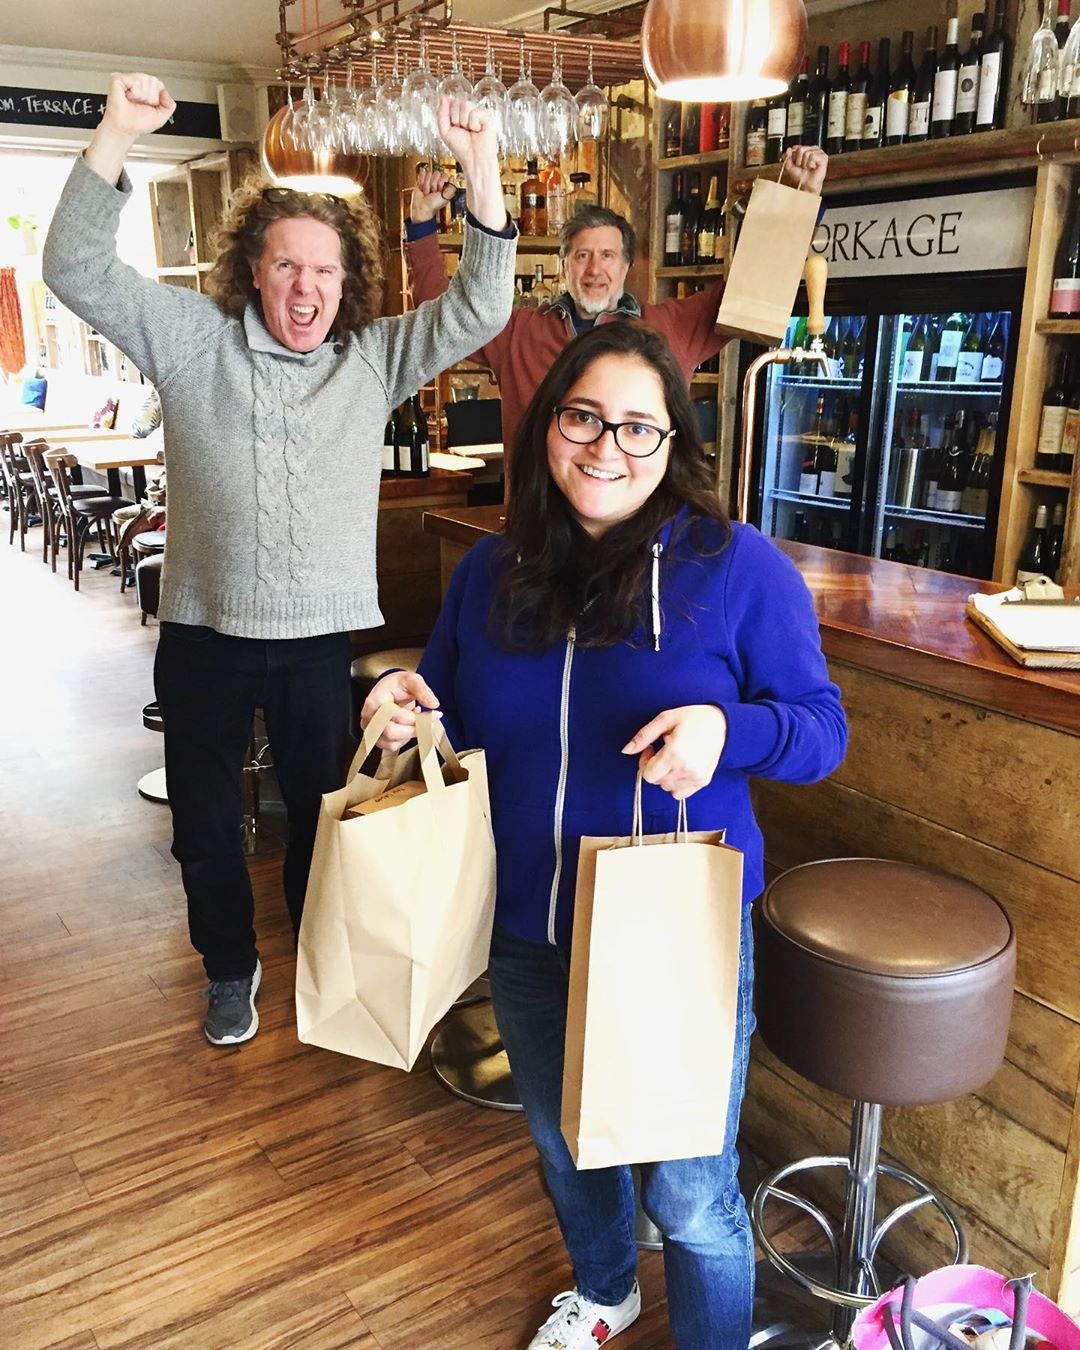 Our first lunch takeaway today!! Finished off with some off sale wine. Thank you so much for your support, it's means so much. ❤️🍷 #supportlocal @keepingbathafloat